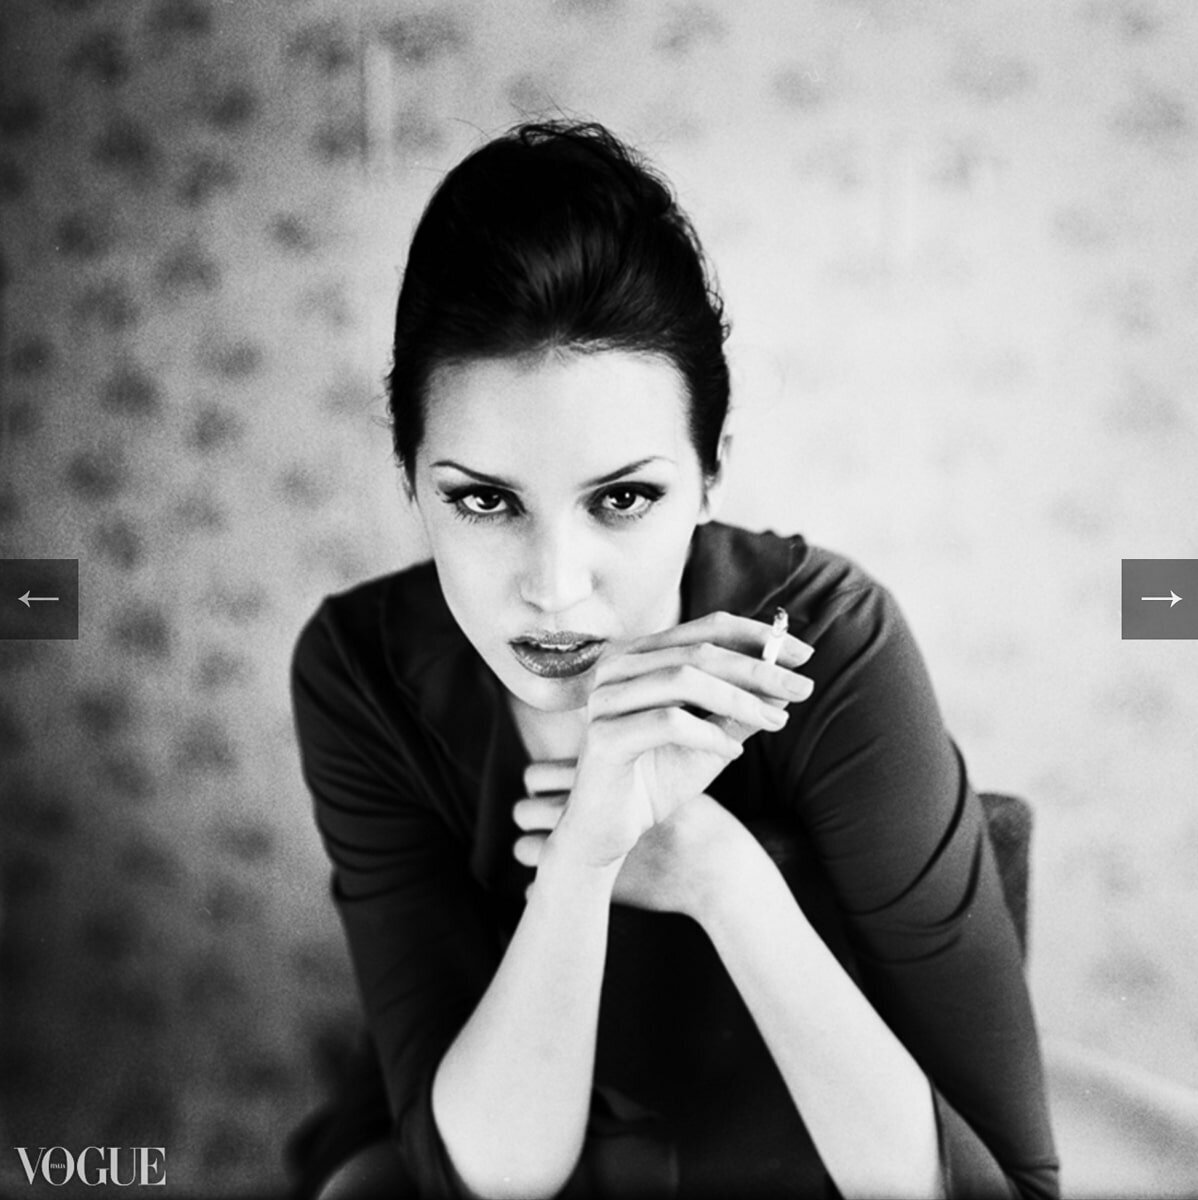 vogue-portrait-photographer-boston-photo-8